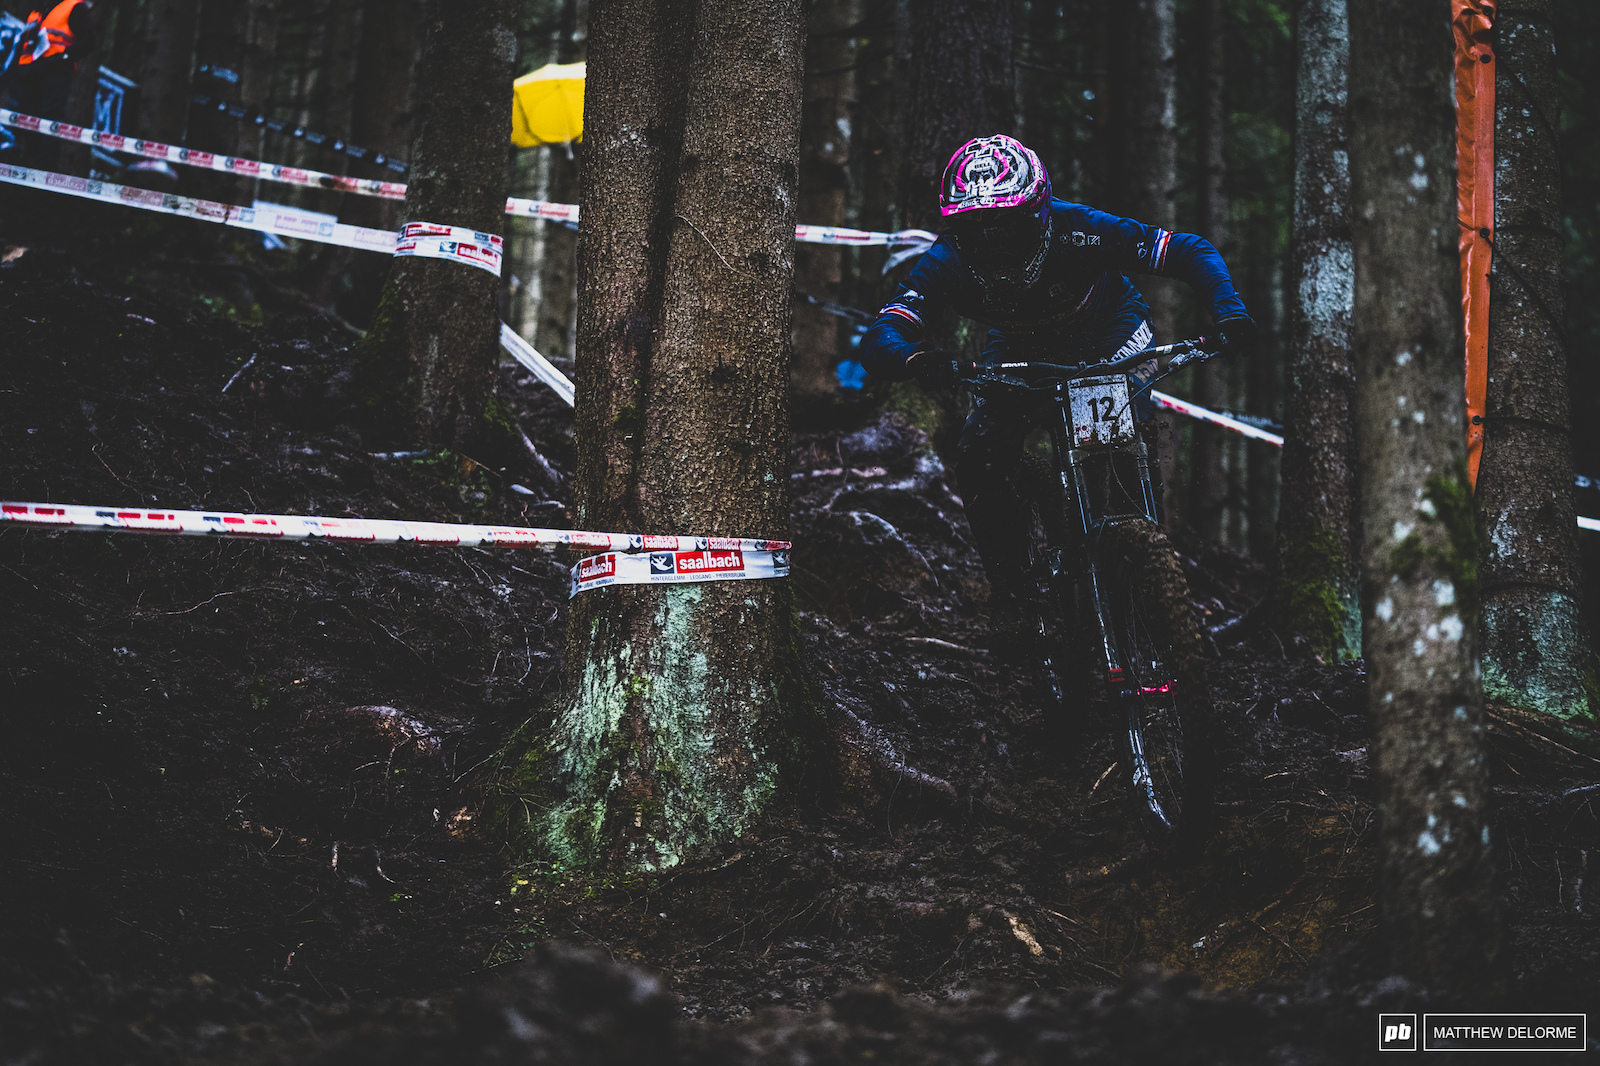 Remi Thirion on his was to third place in what was a truly wild rn.